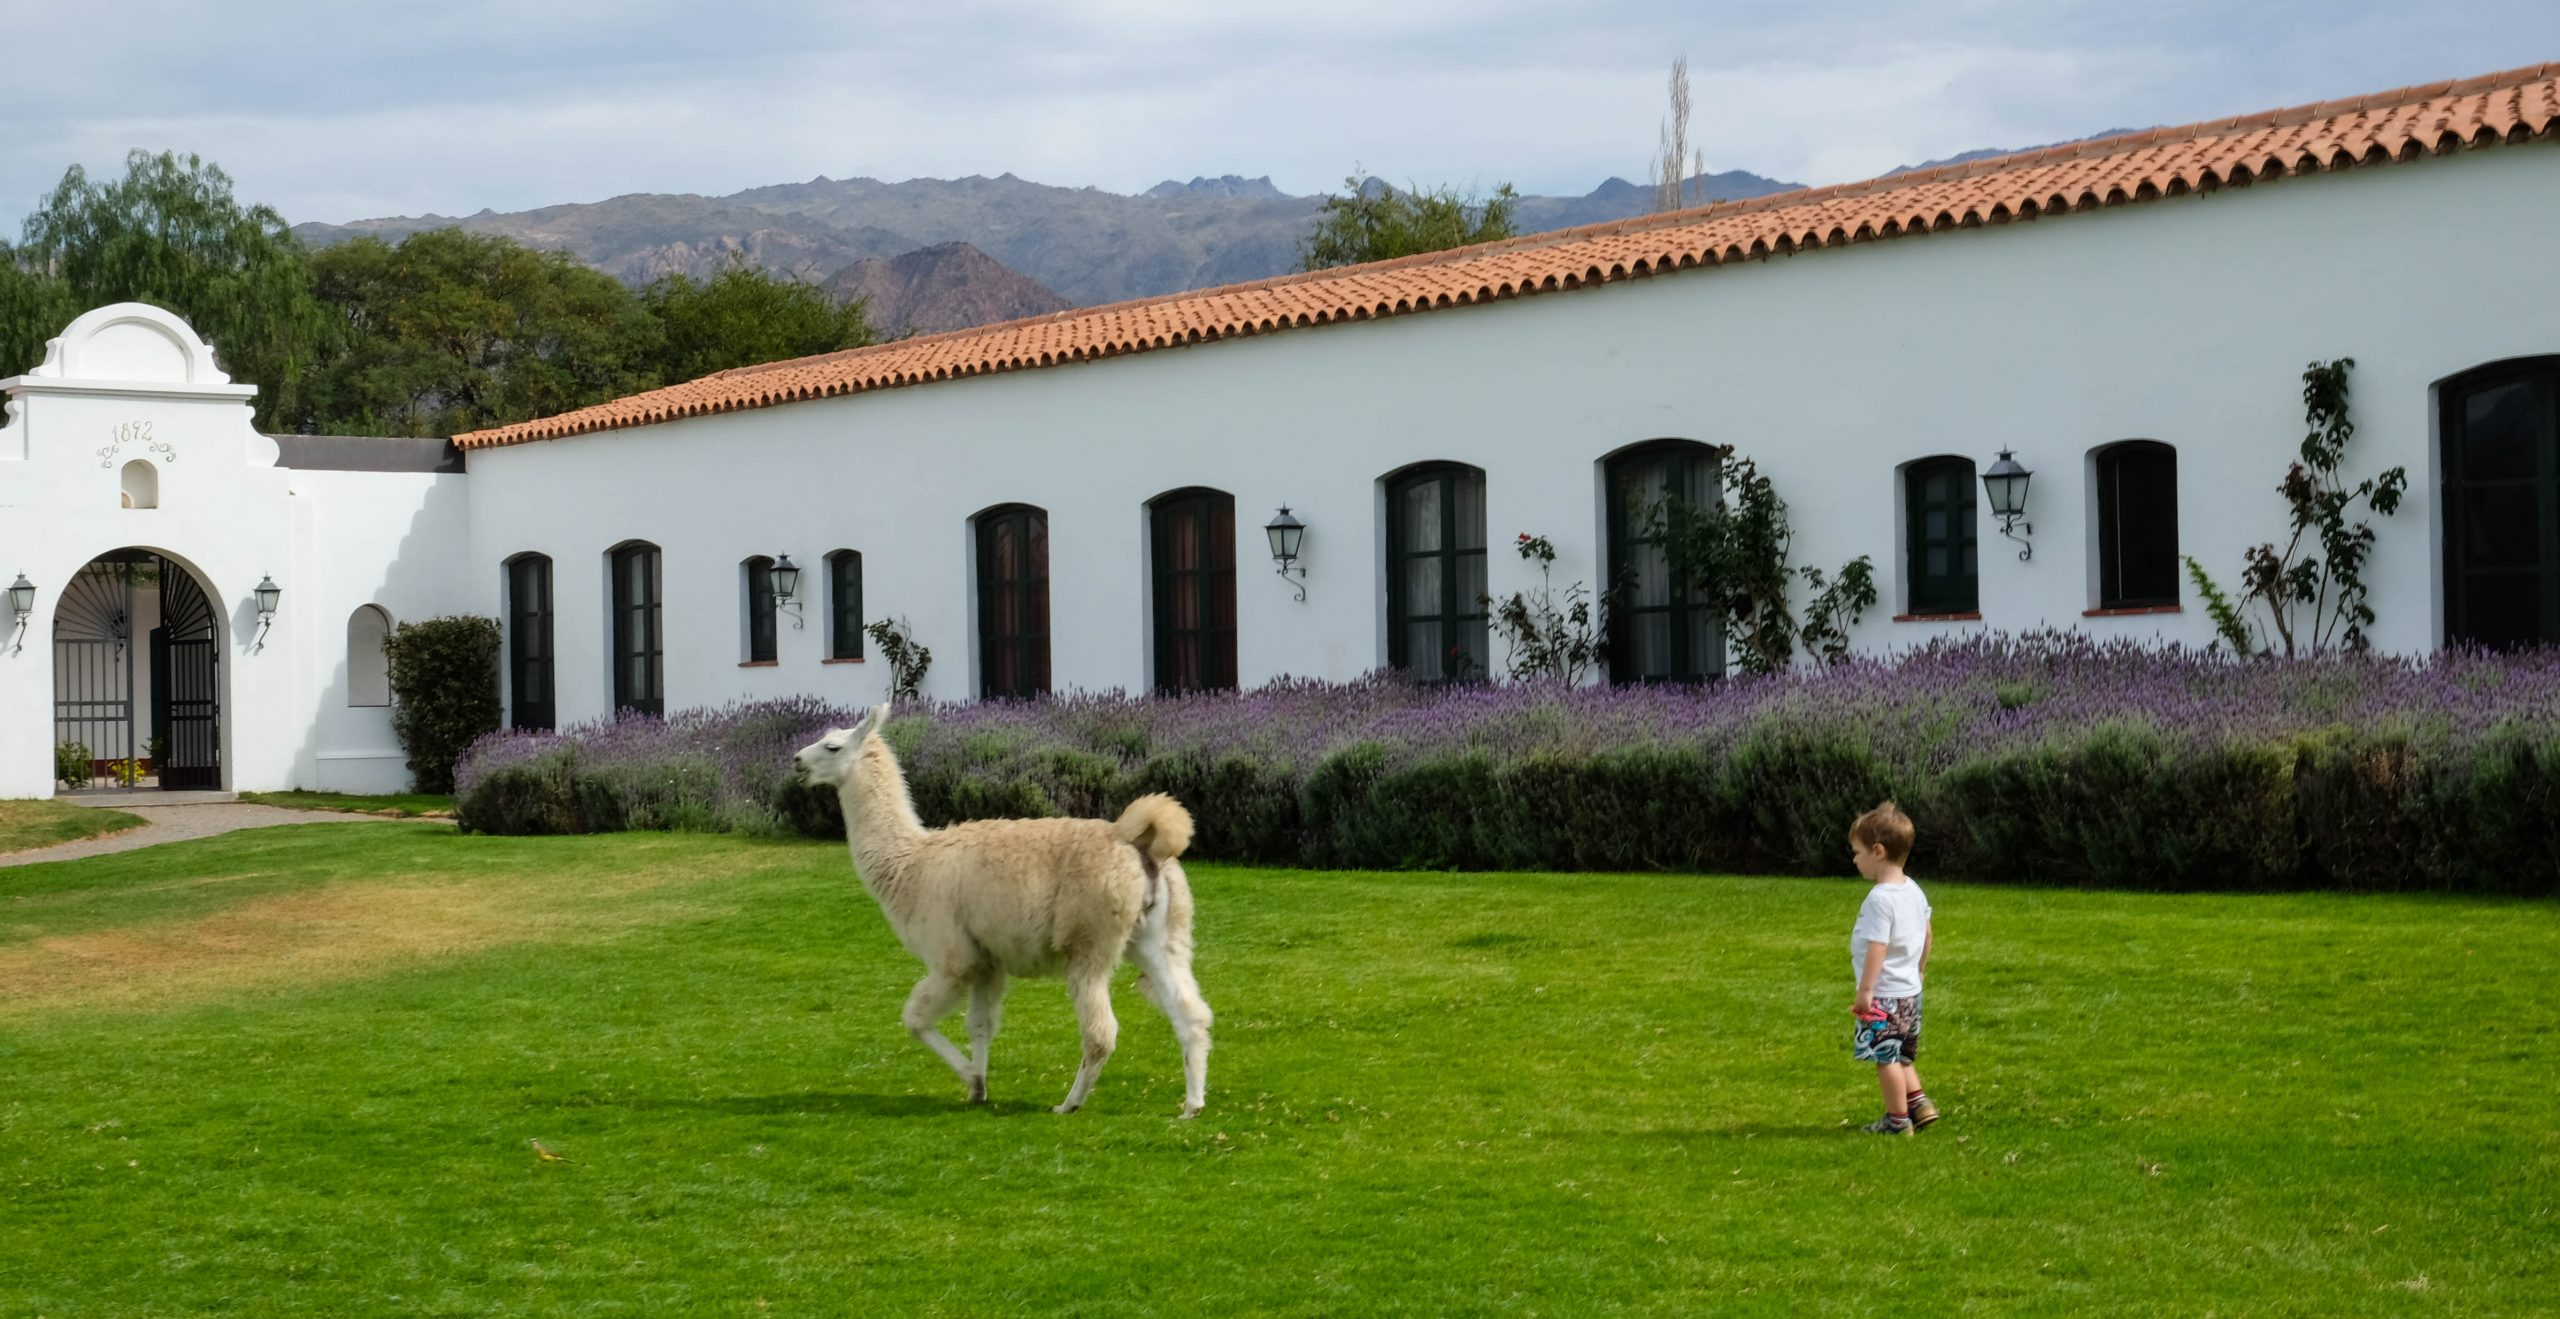 little boy following llama across a lawn